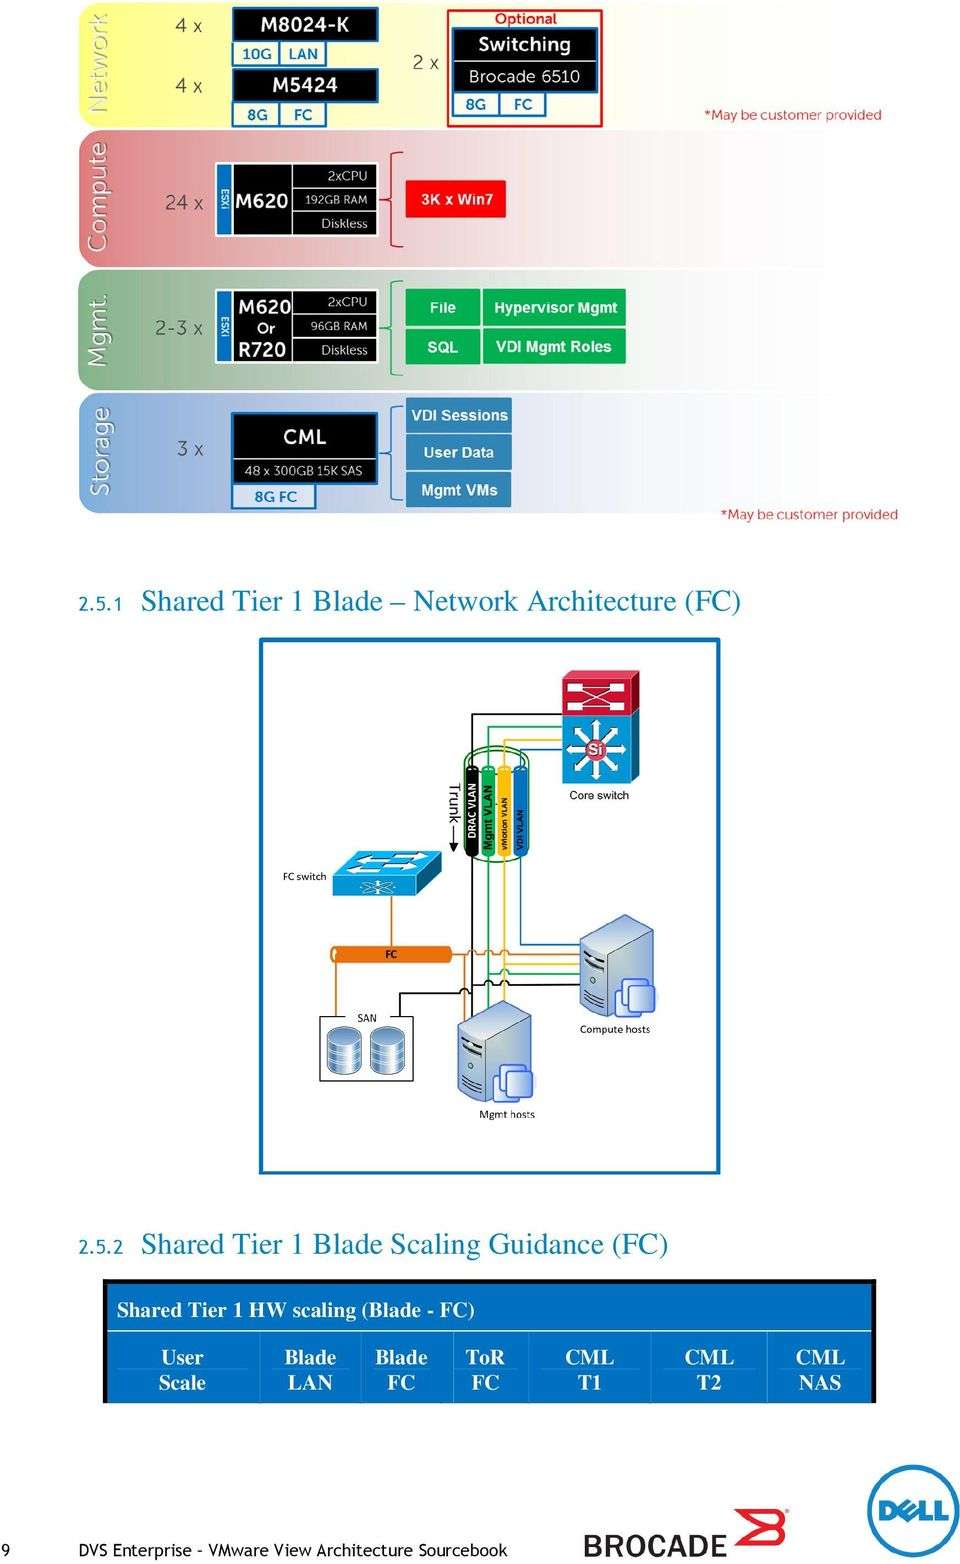 scaling (Blade - FC) User Scale Blade LAN Blade FC ToR FC CML